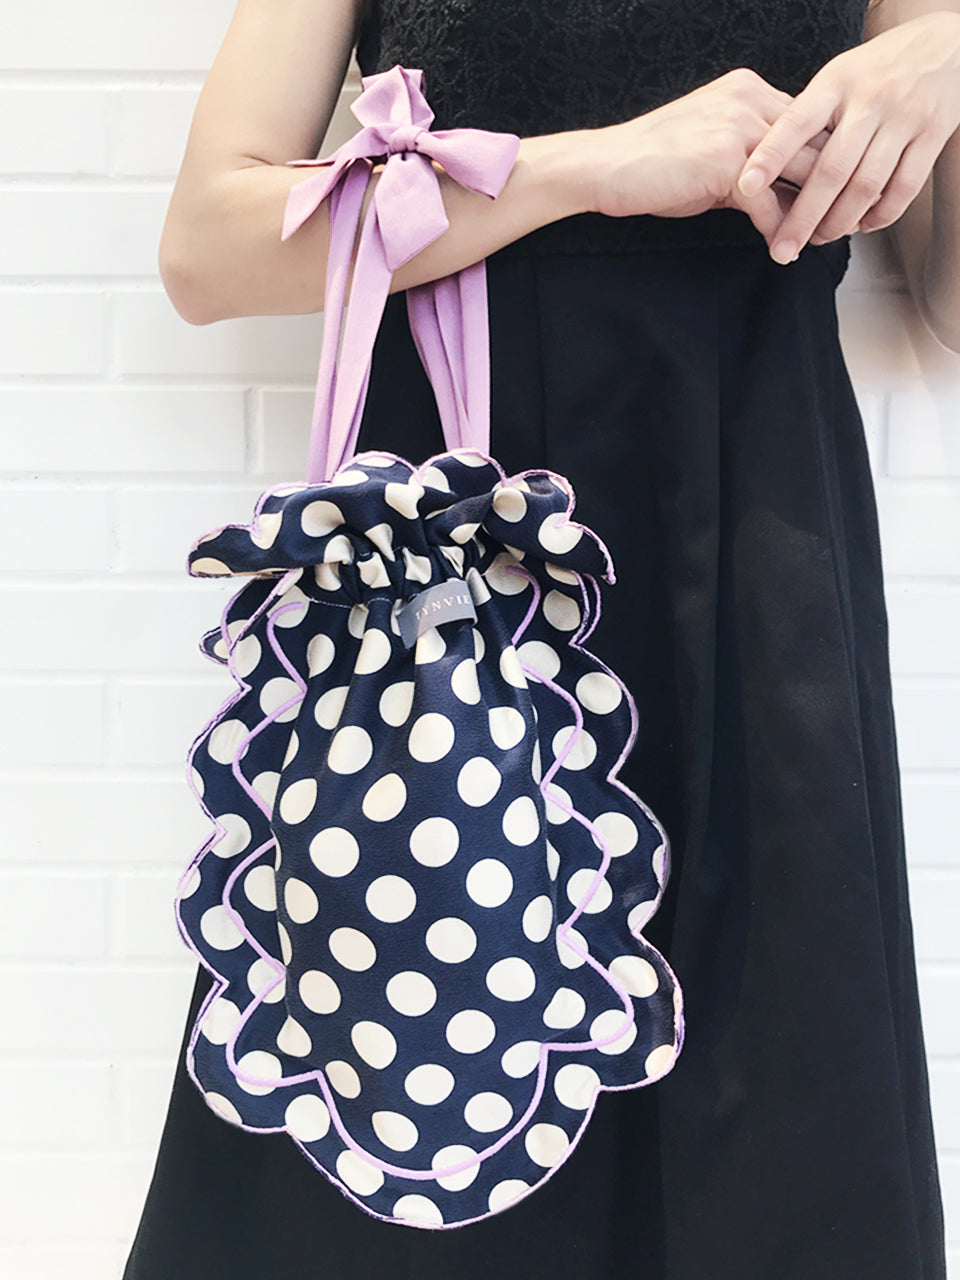 Surprise Sale! Navy Dots Scalloped Drawstring Silky Shopper